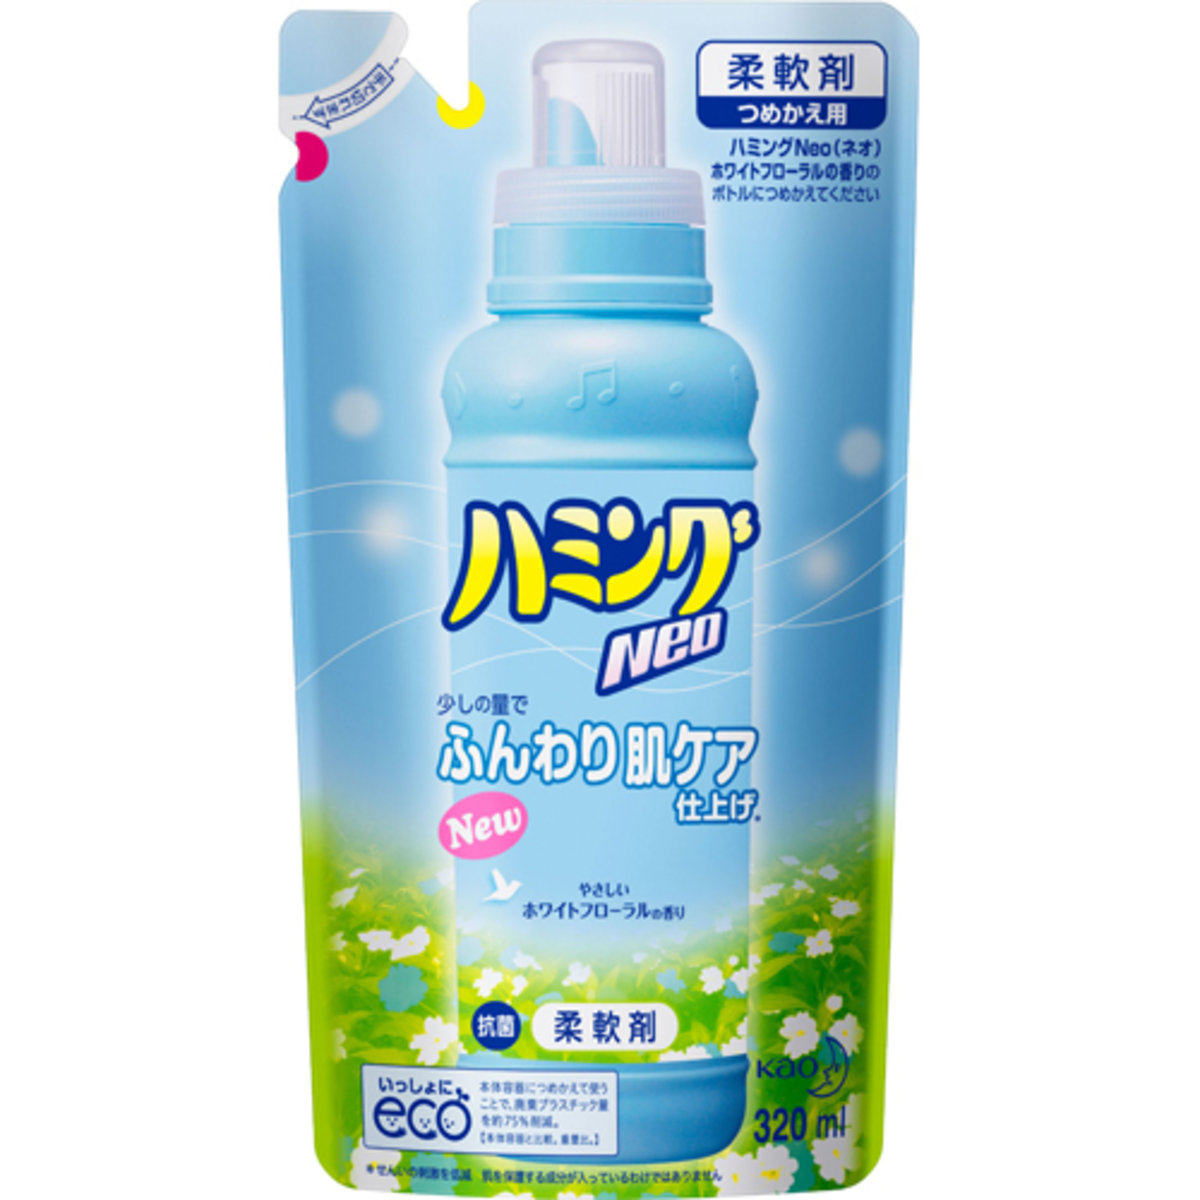 Kao Neo Fabric Softener Refill White Flower 320ml Hktvmall